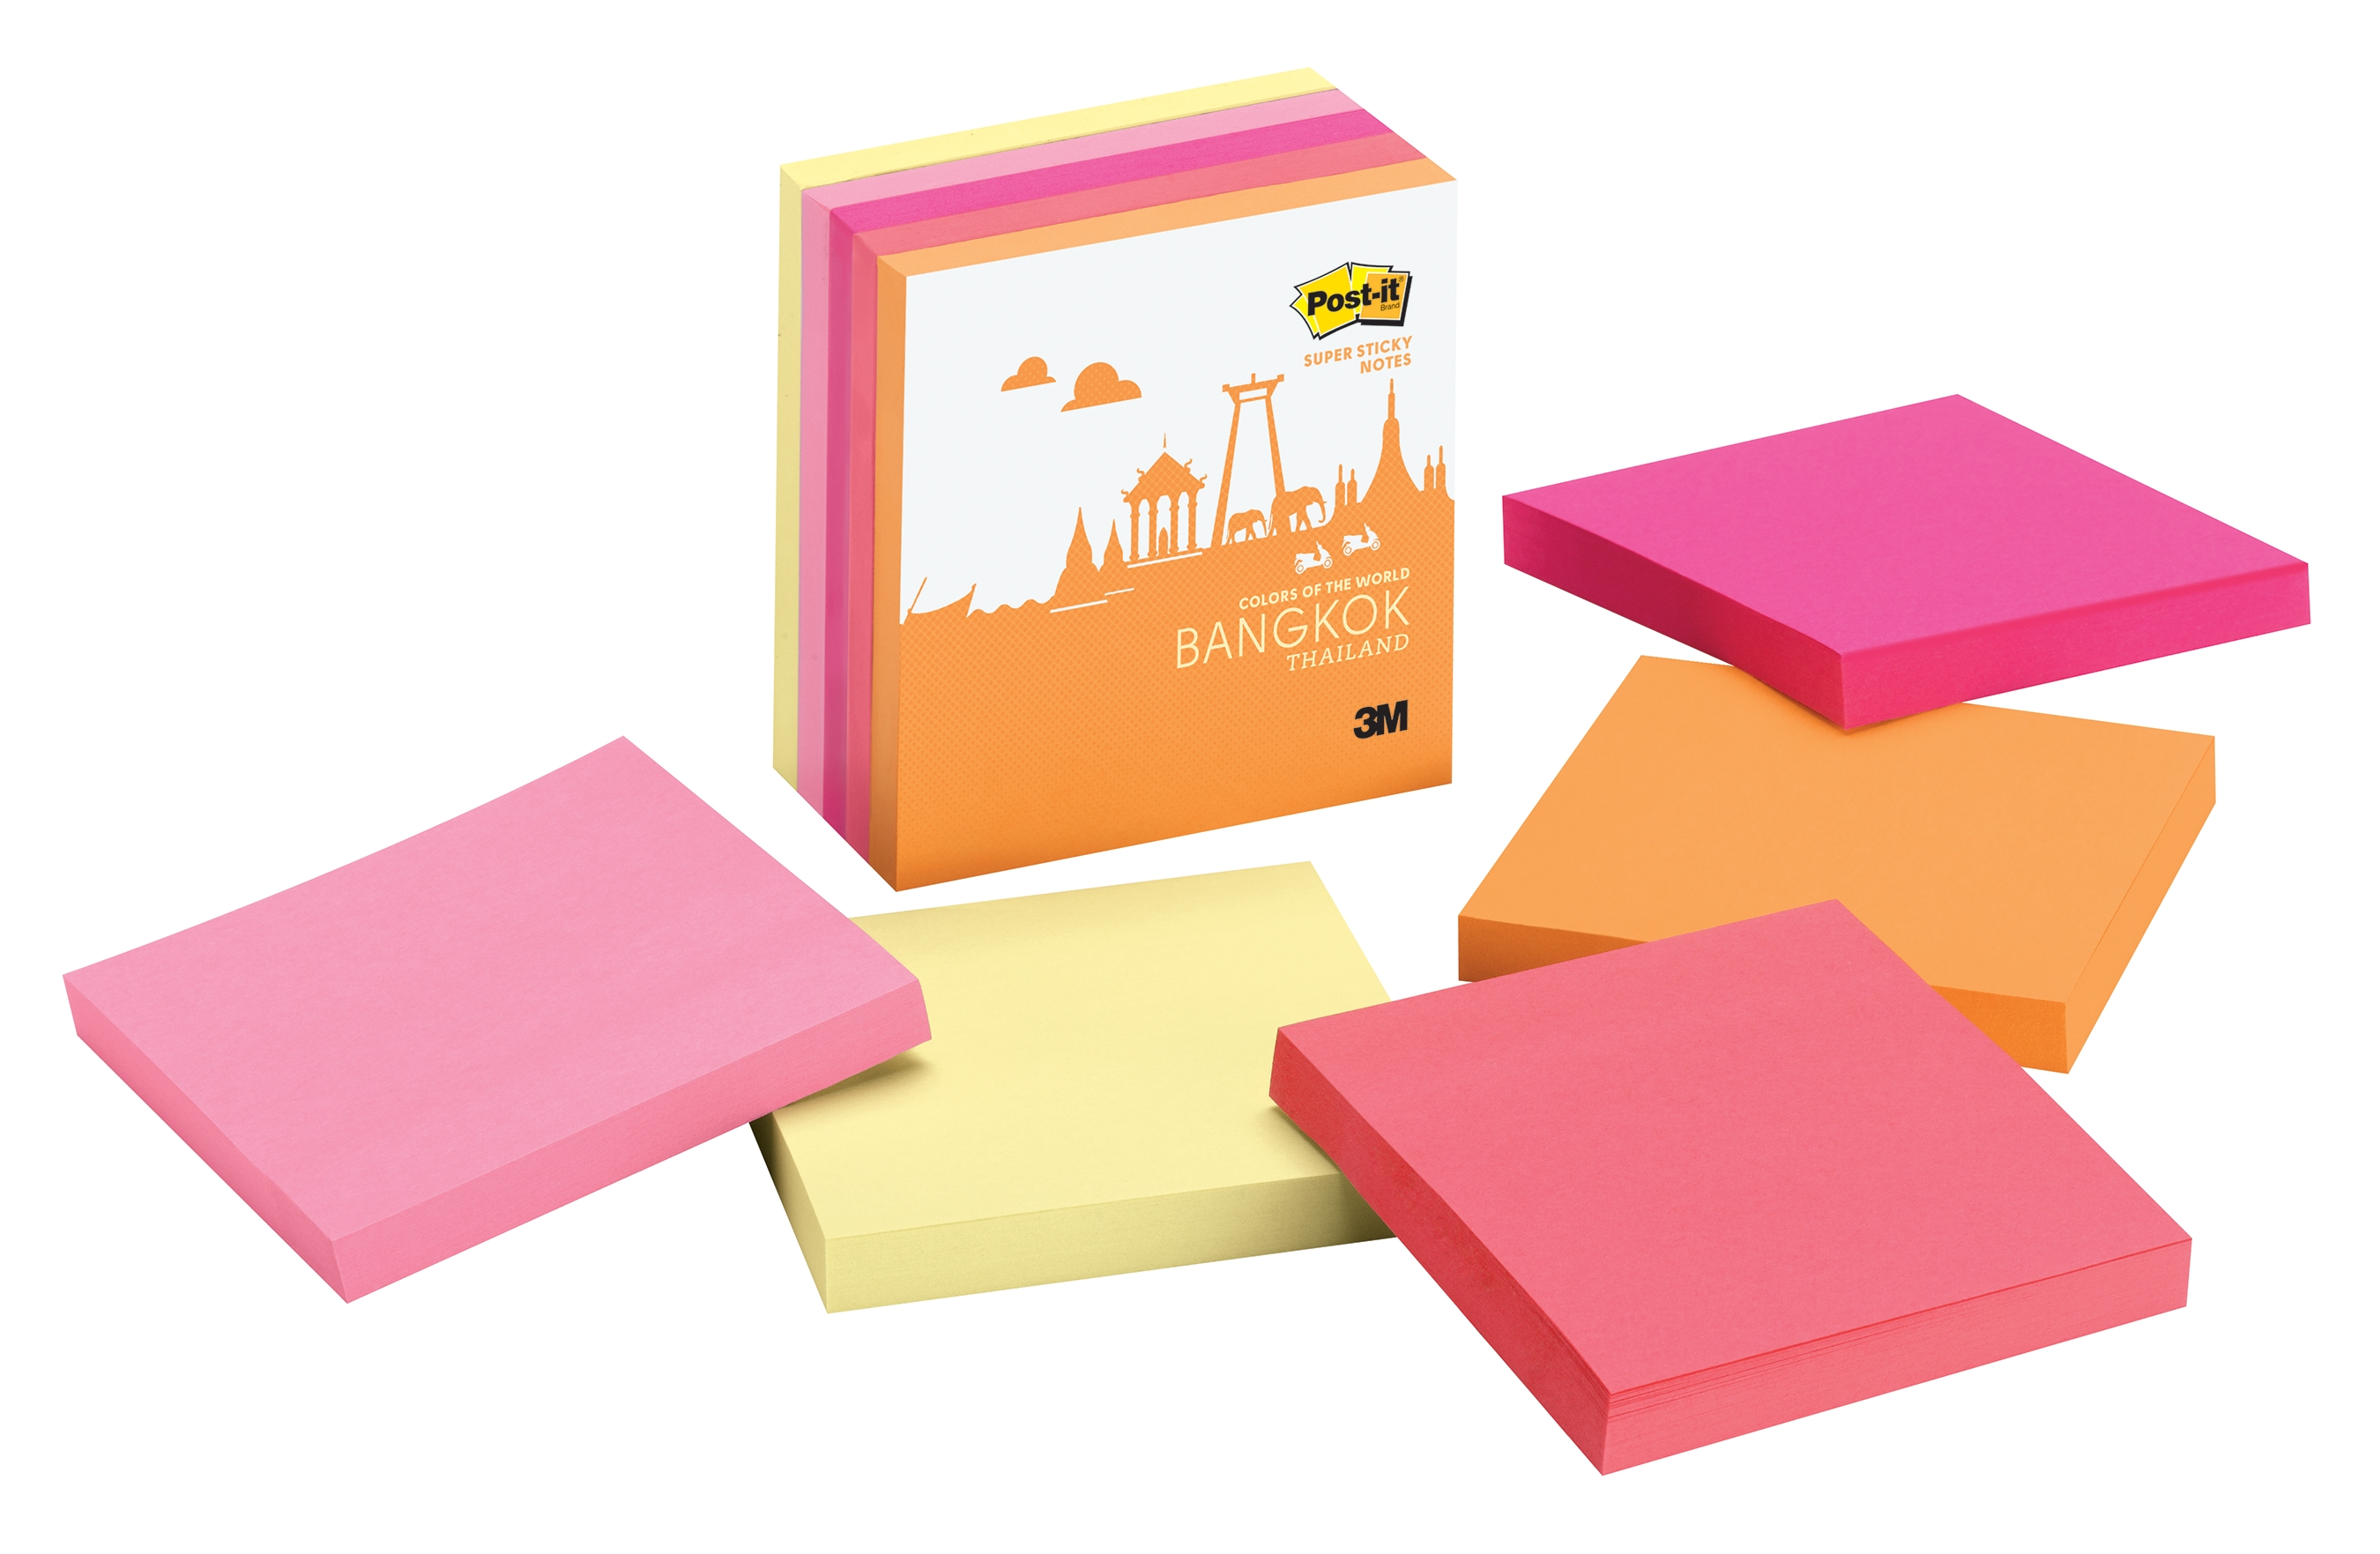 The Bangkok Color Collection from the new Post-it Brand Colors of the World Collection (Photo: Business Wire)